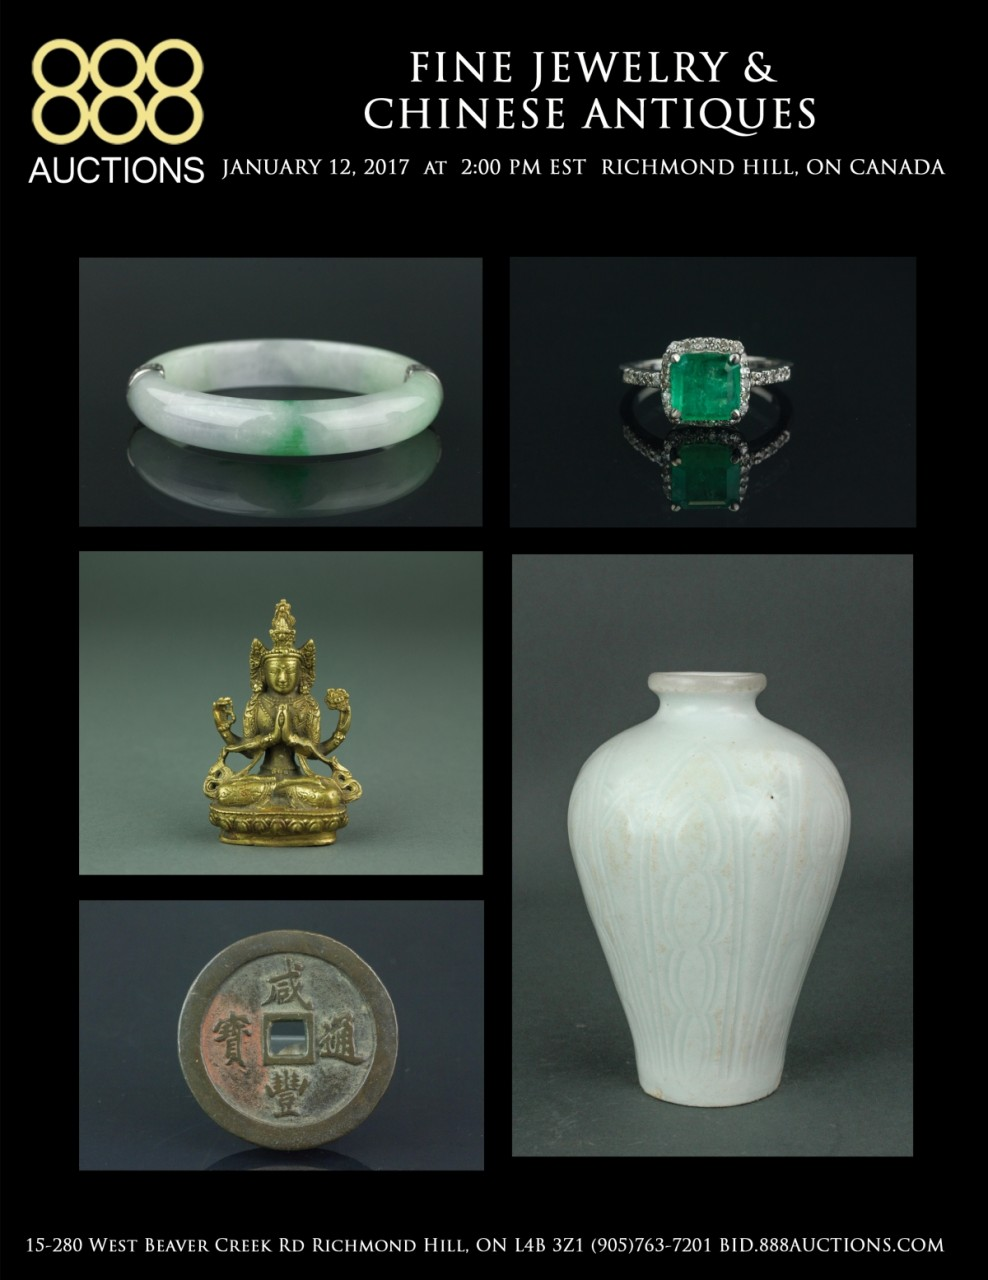 THURSDAY 12 JANUARY 2017 FINE JEWELRY & CHINESE ANTIQUES